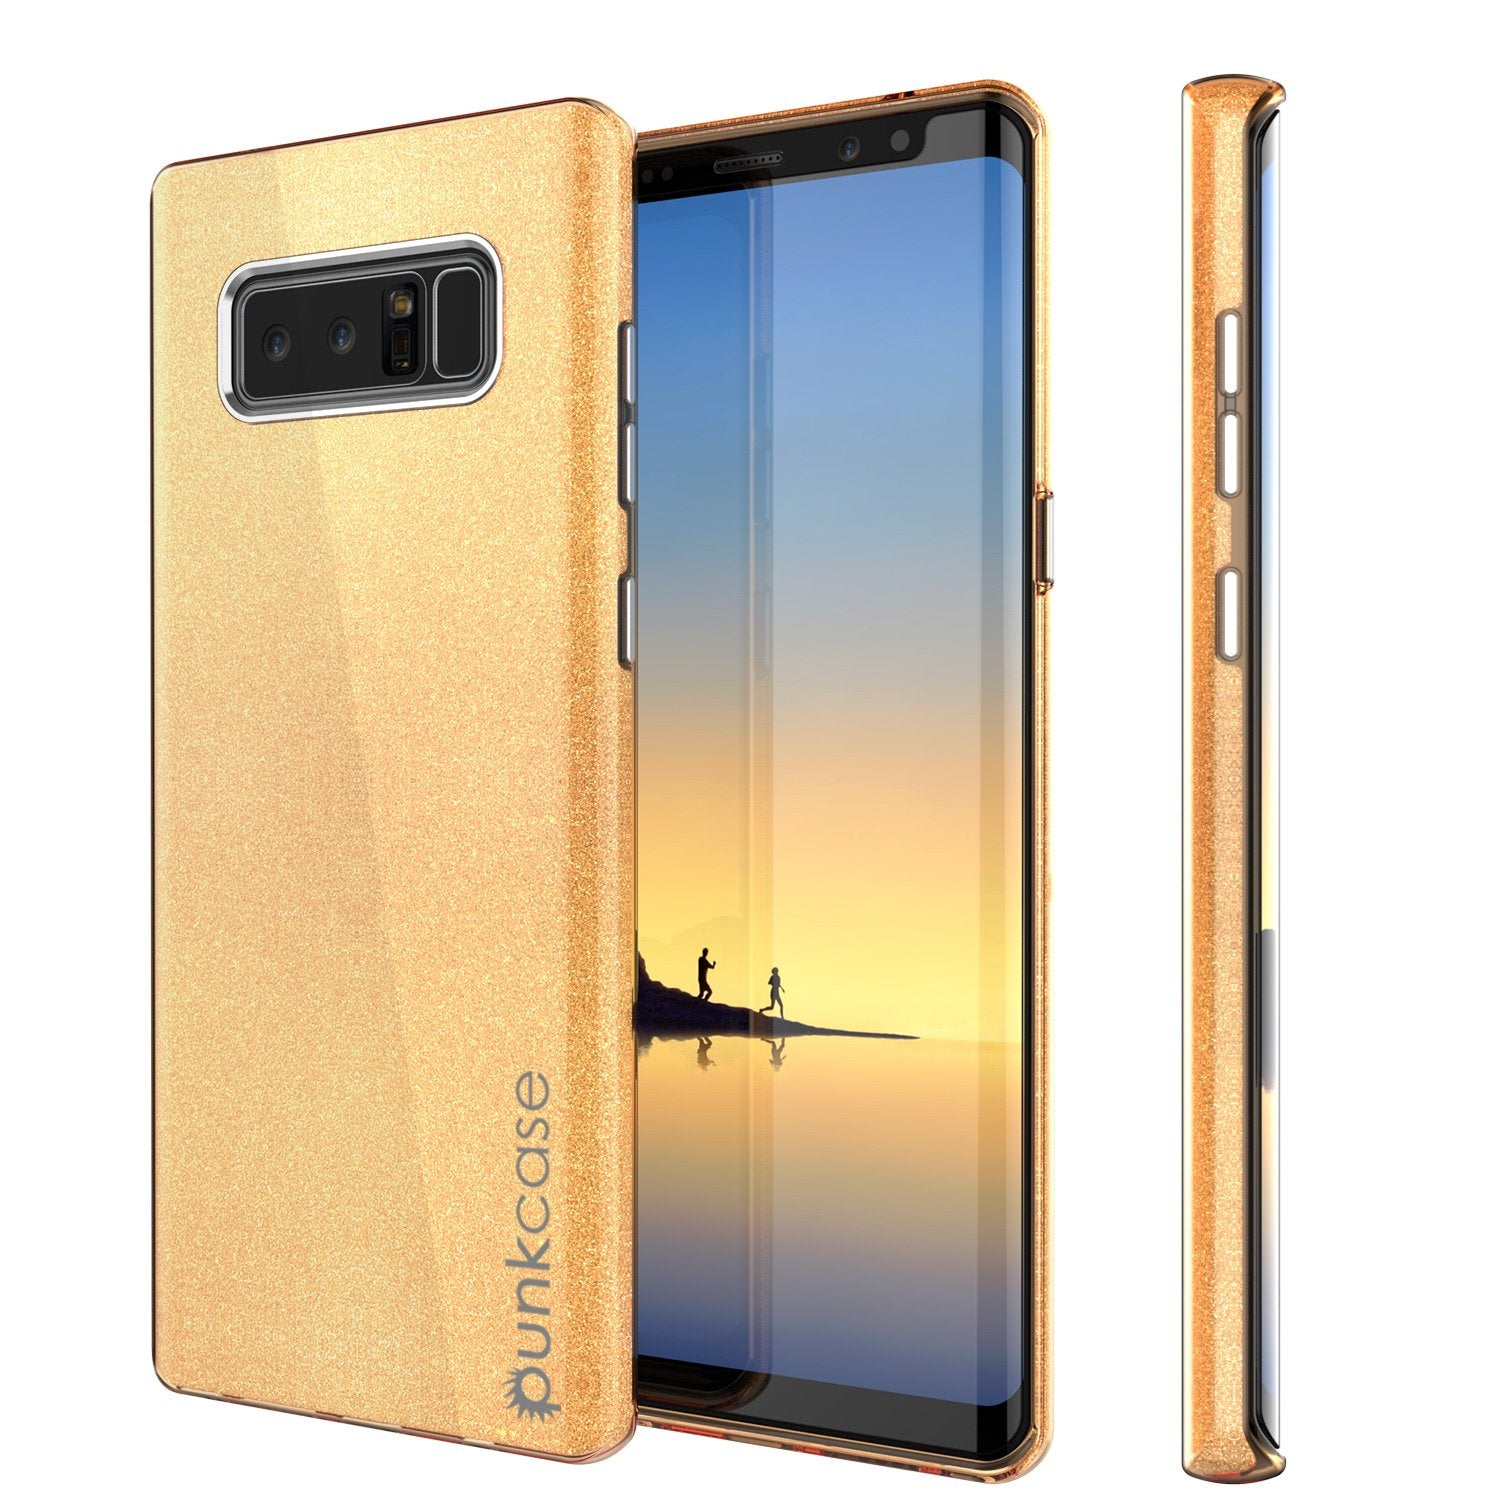 Galaxy Note 8 Case, Punkcase Galactic 2.0 Series Ultra Slim [Gold]